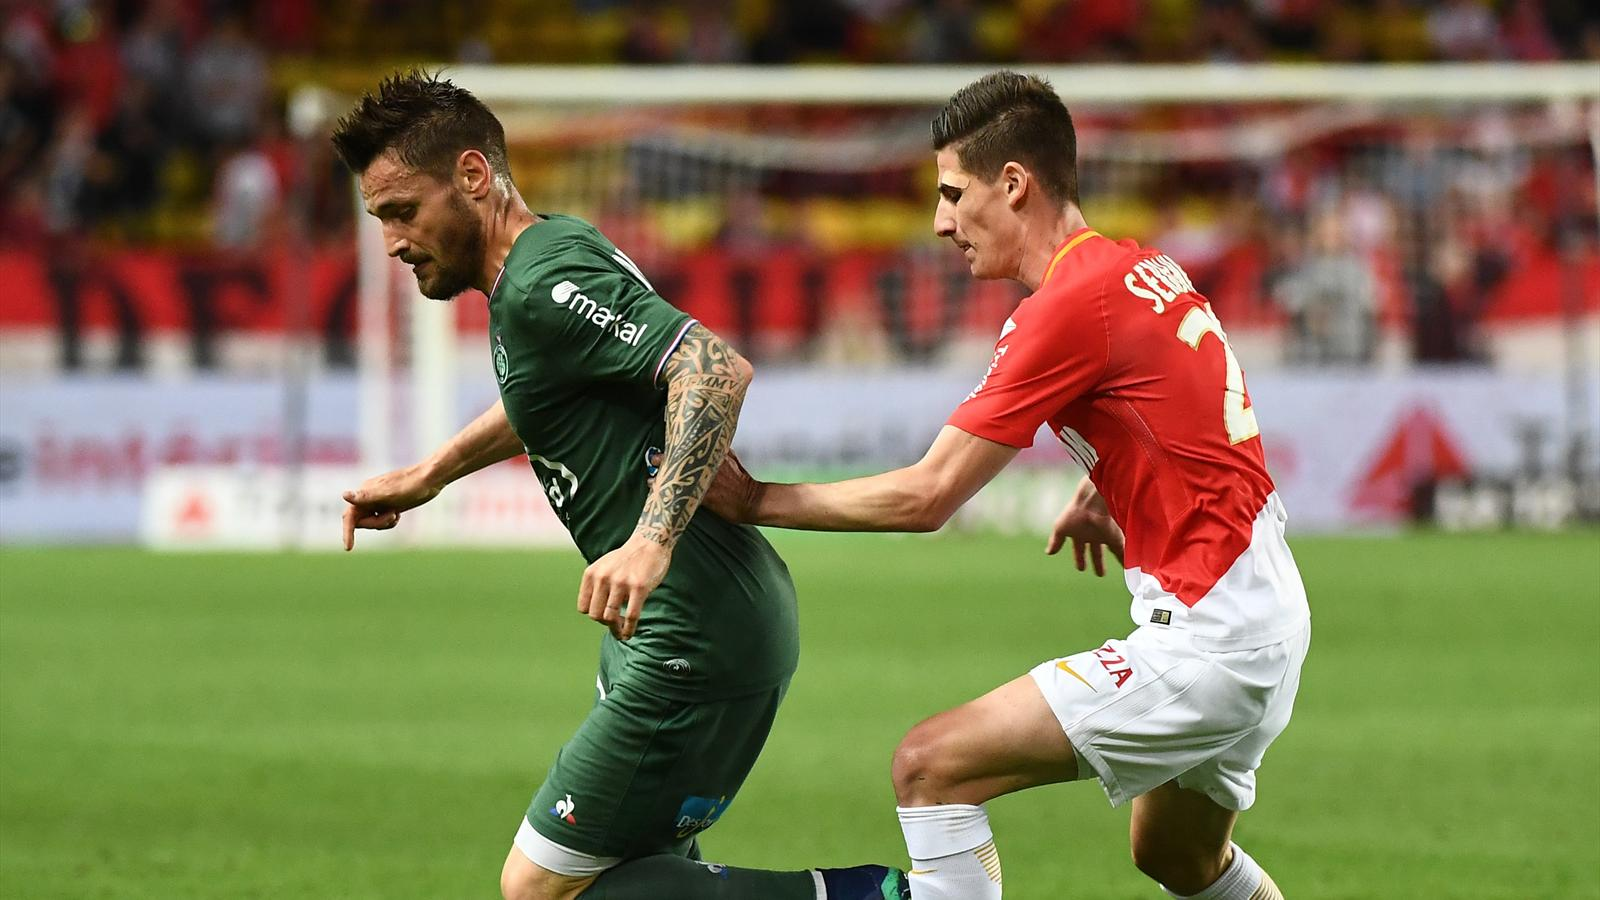 1c2ef1209c50 EN DIRECT   LIVE. AS Monaco - Saint-Etienne - Ligue 1 - 12 mai 2018 ...